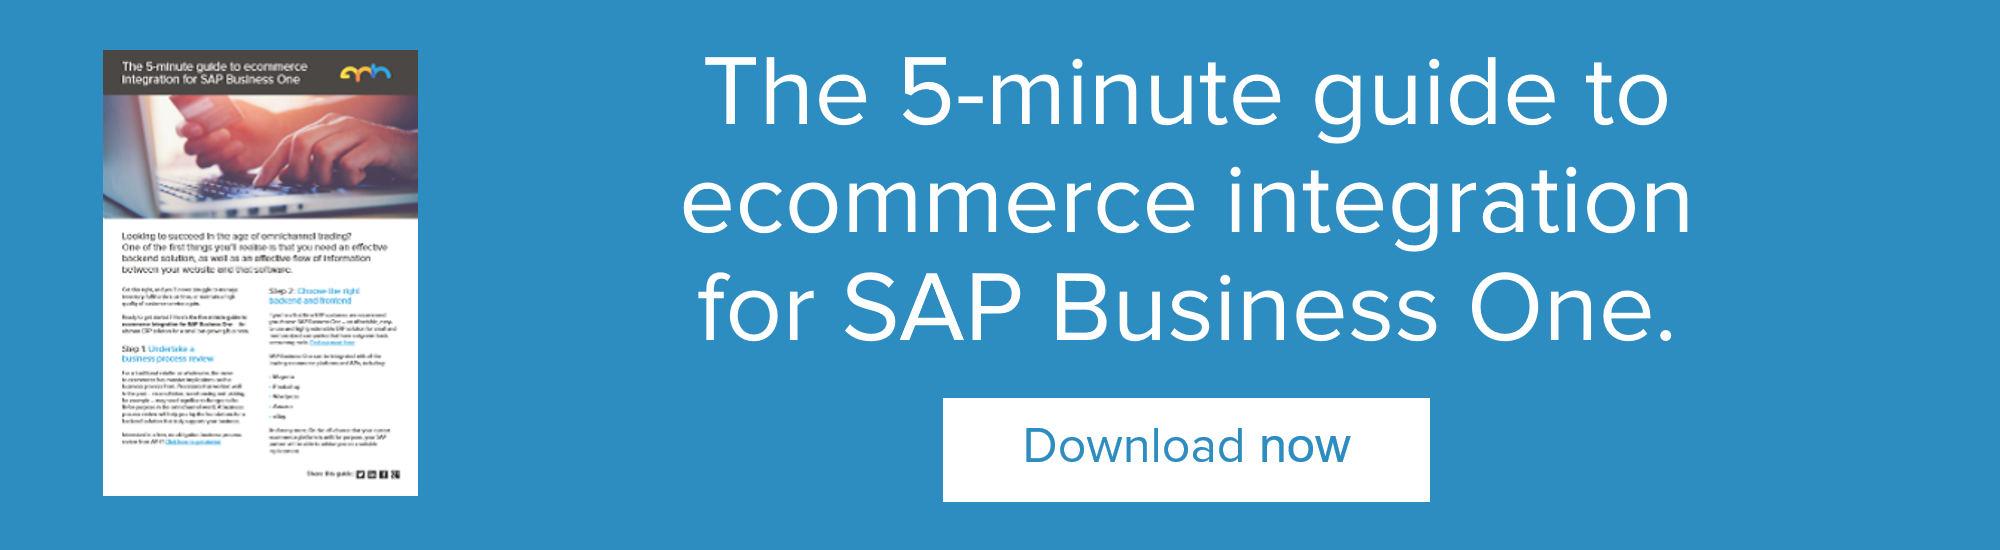 The 5-minute guide to ecommerce integration for SAP Business One